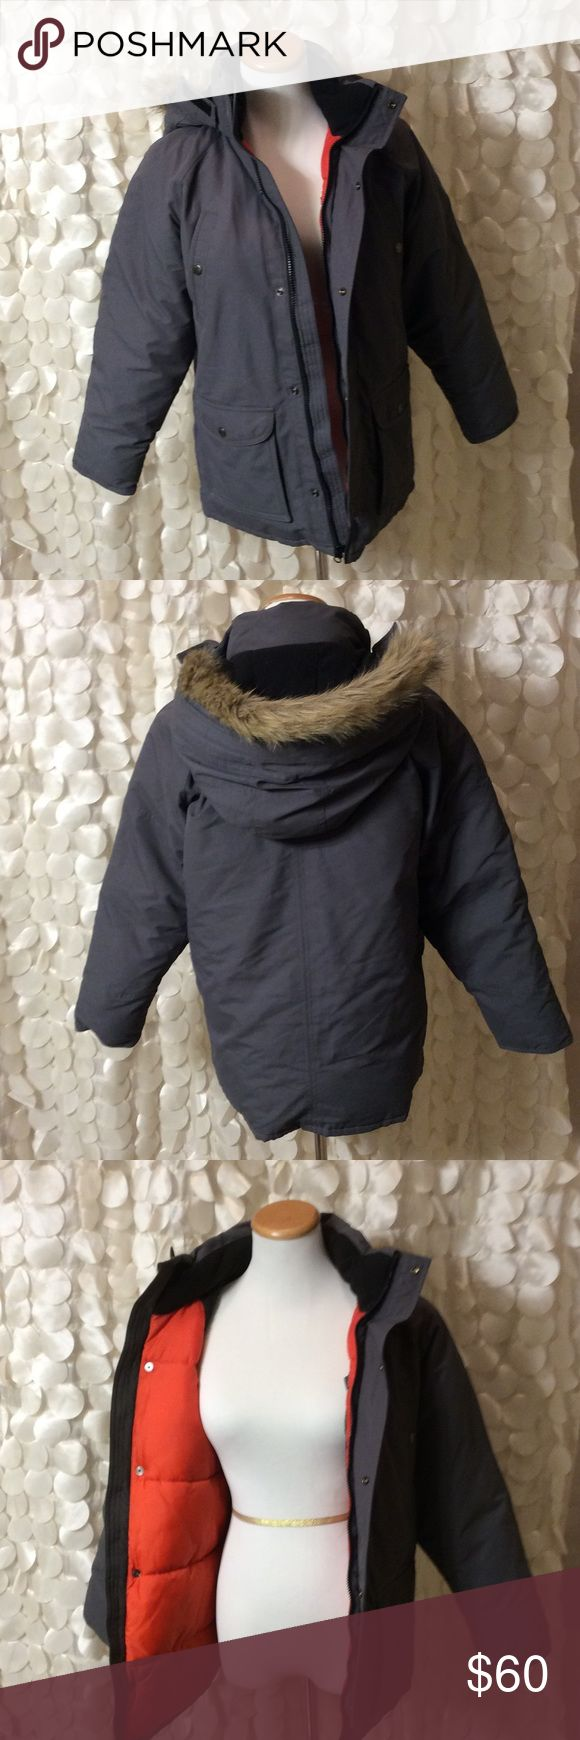 Grey Hooded Boys Winter Coat This new with tags Gap grey winter coat is super warm. The hood has a remove able faux fur trim. Never worn, no flaws. GAP Jackets & Coats Puffers